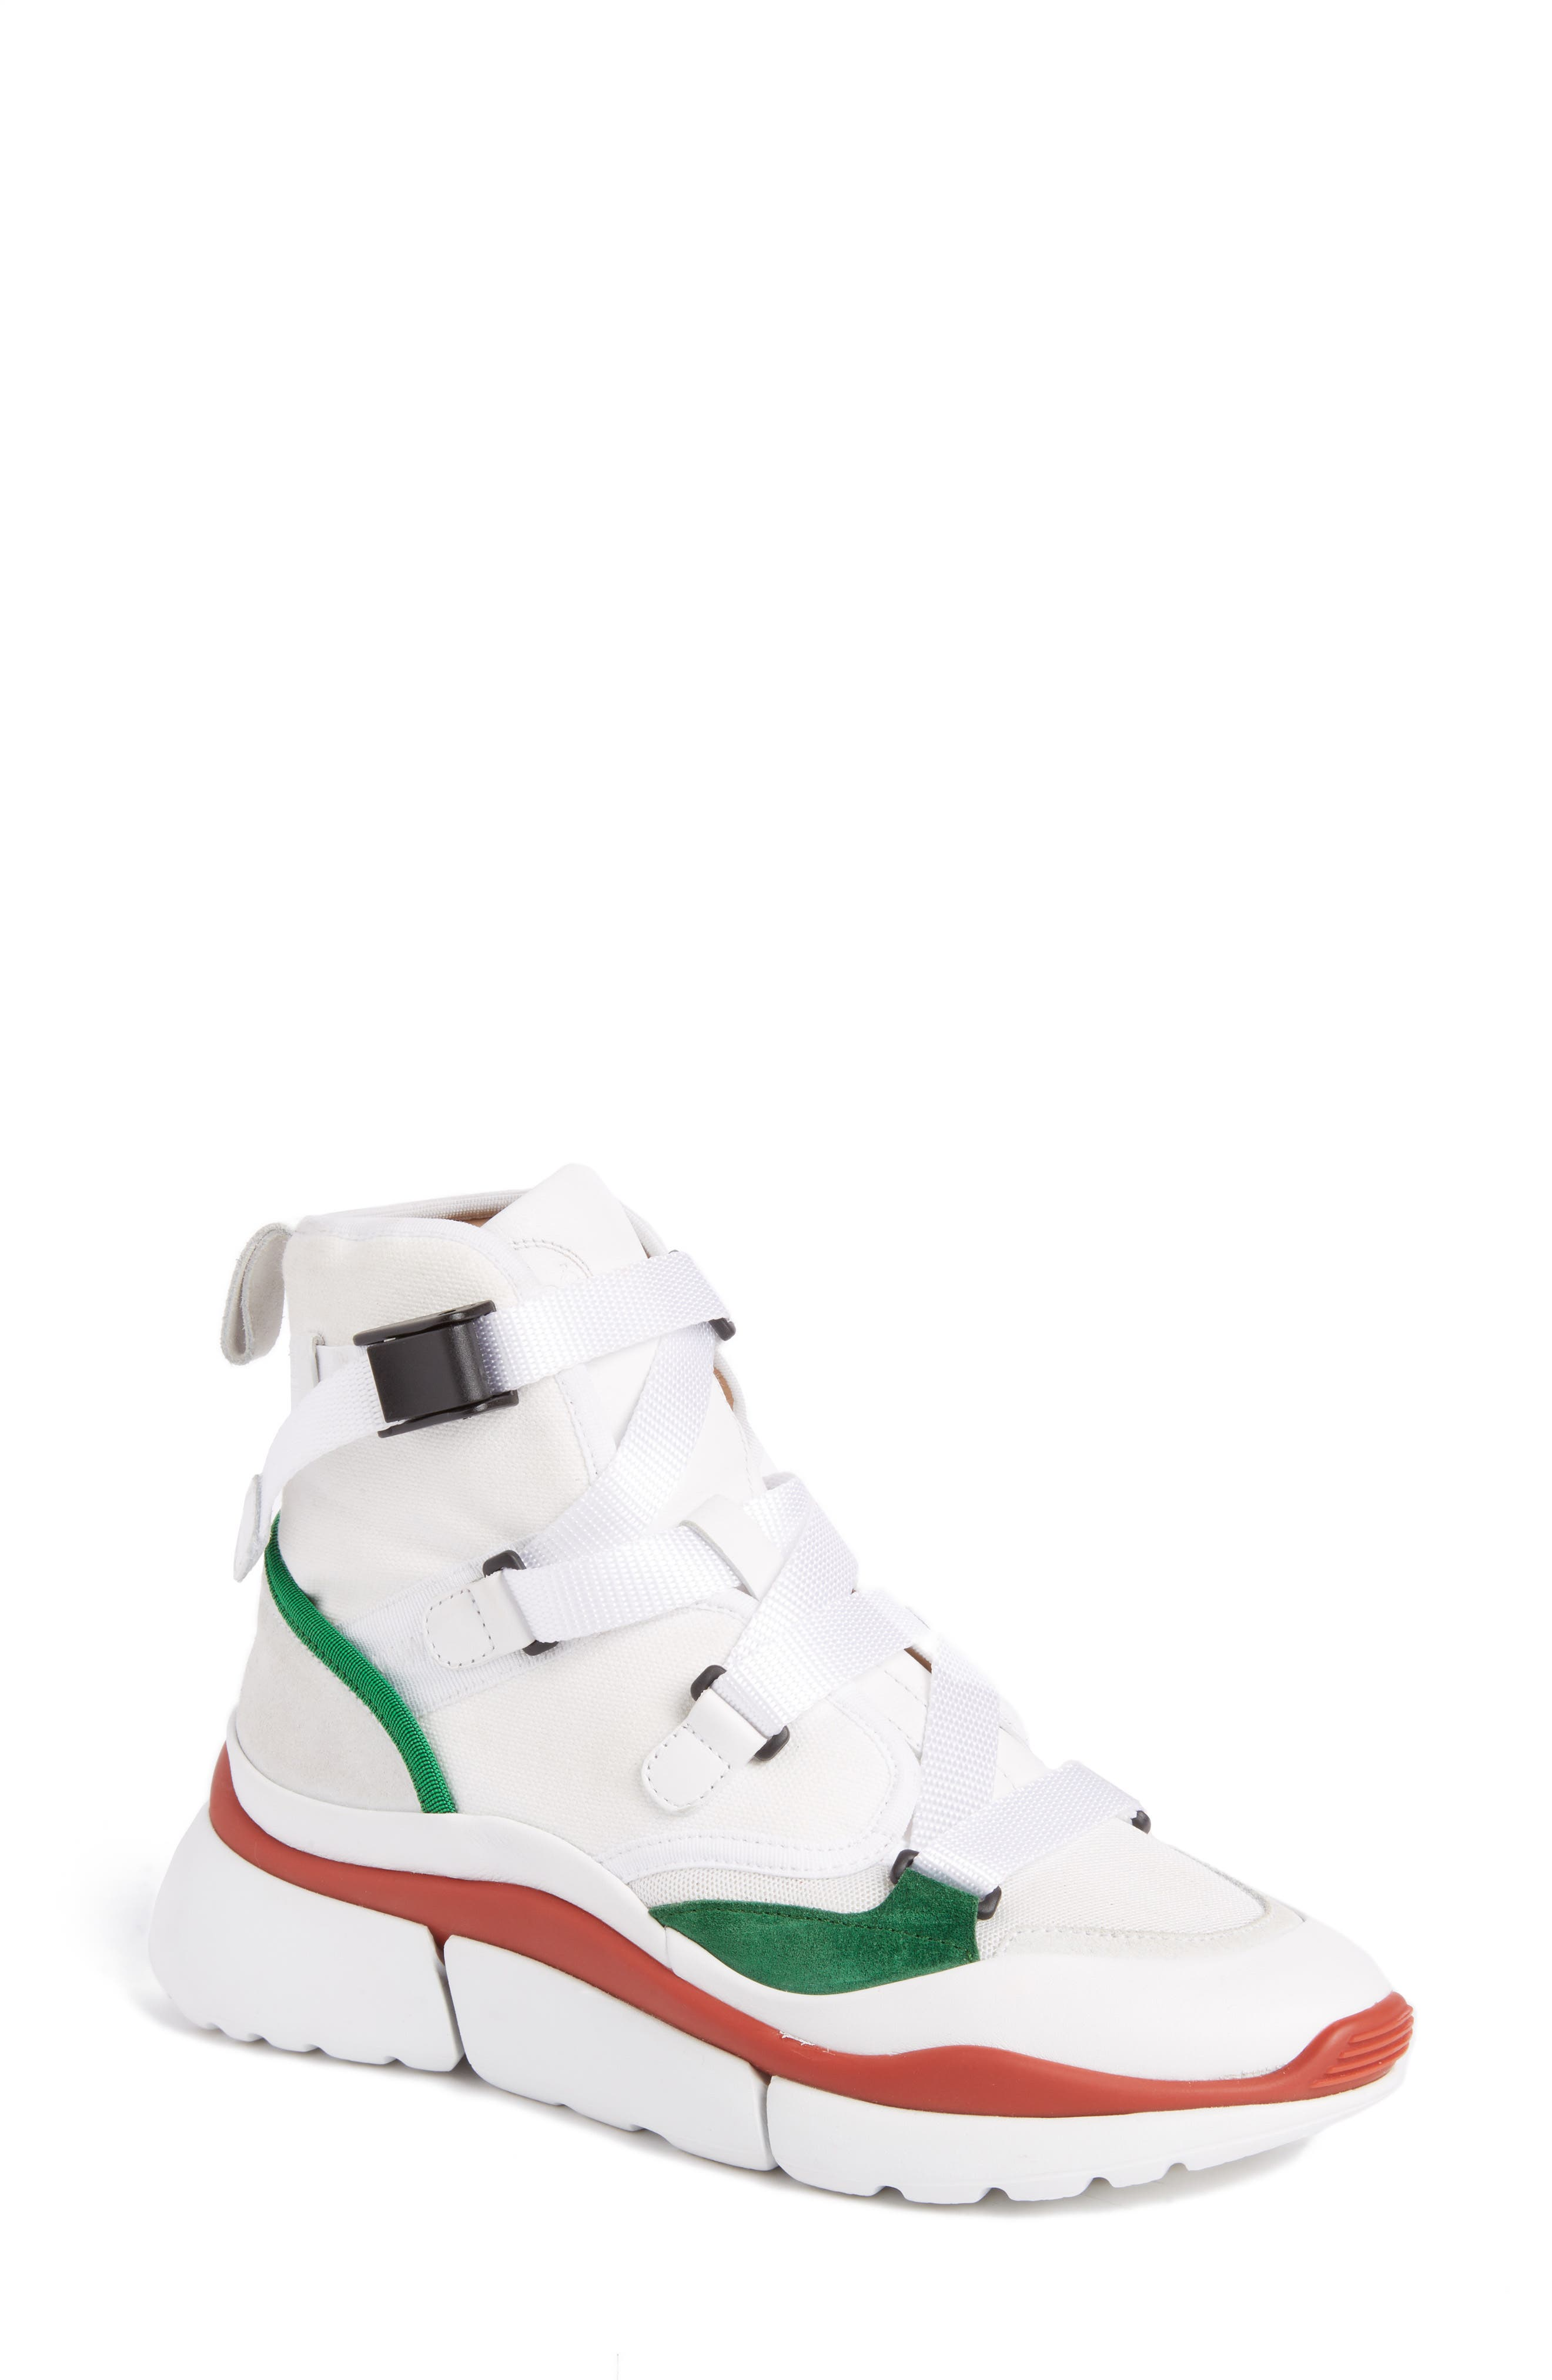 Sonnie High Top Sneaker,                         Main,                         color, White/ Green/ Red